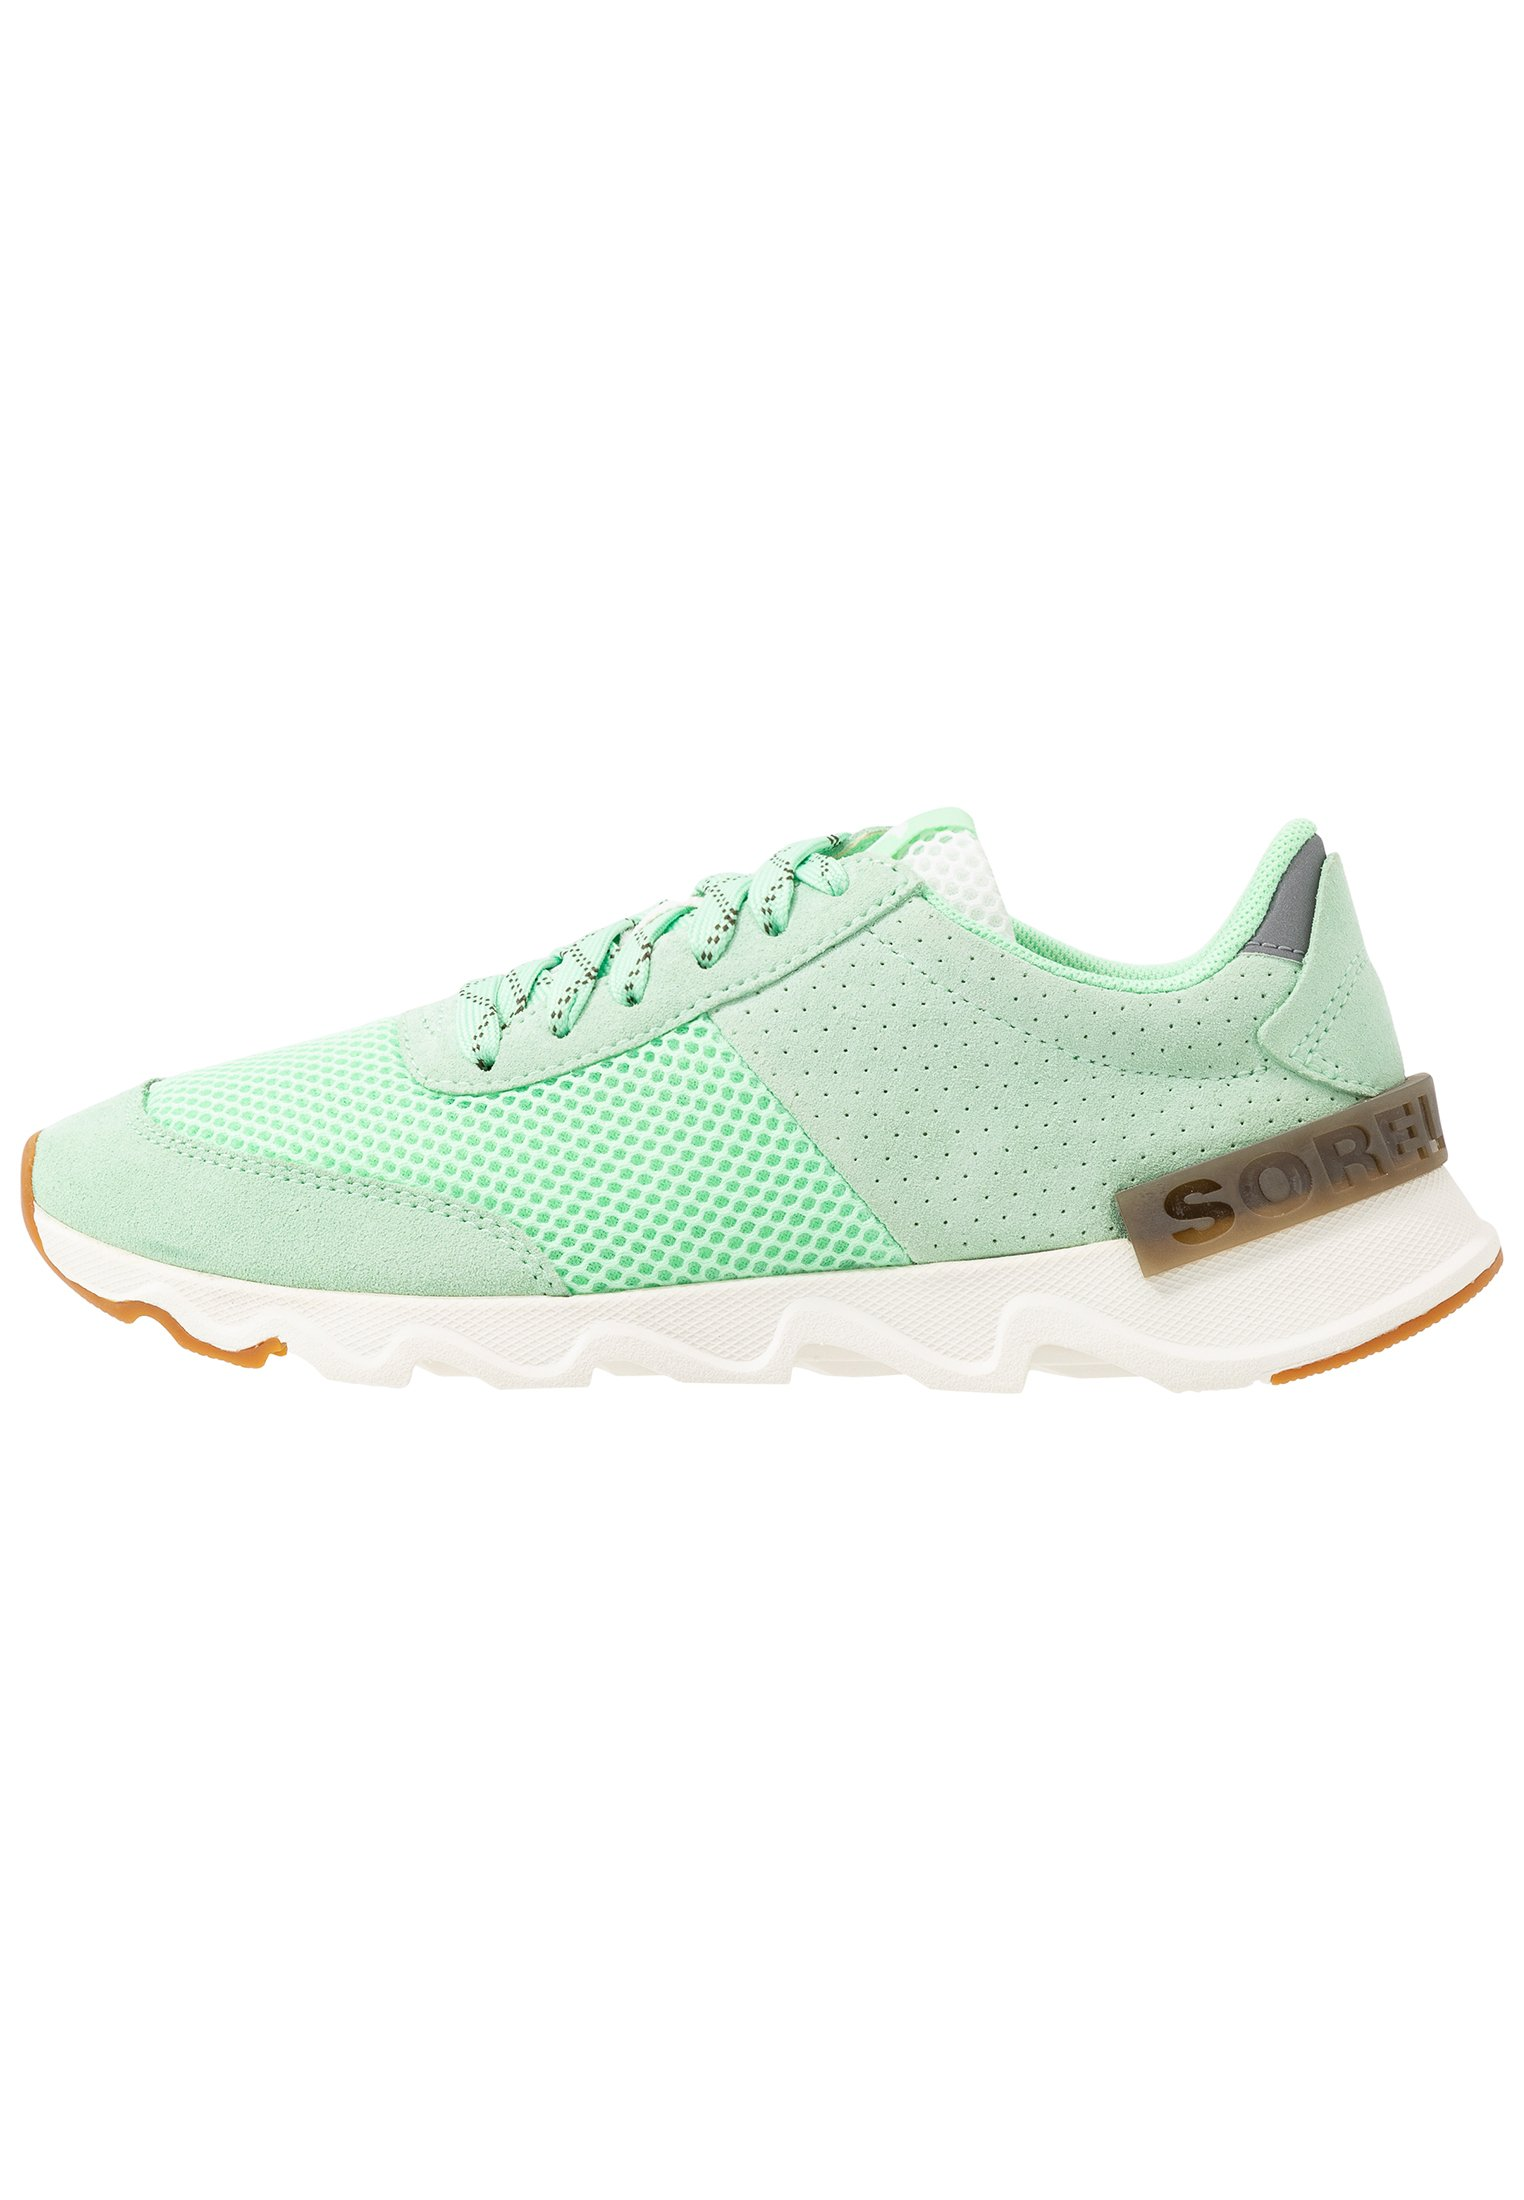 Sorel KINETIC LITE LACE - Sneakers - vivid mint